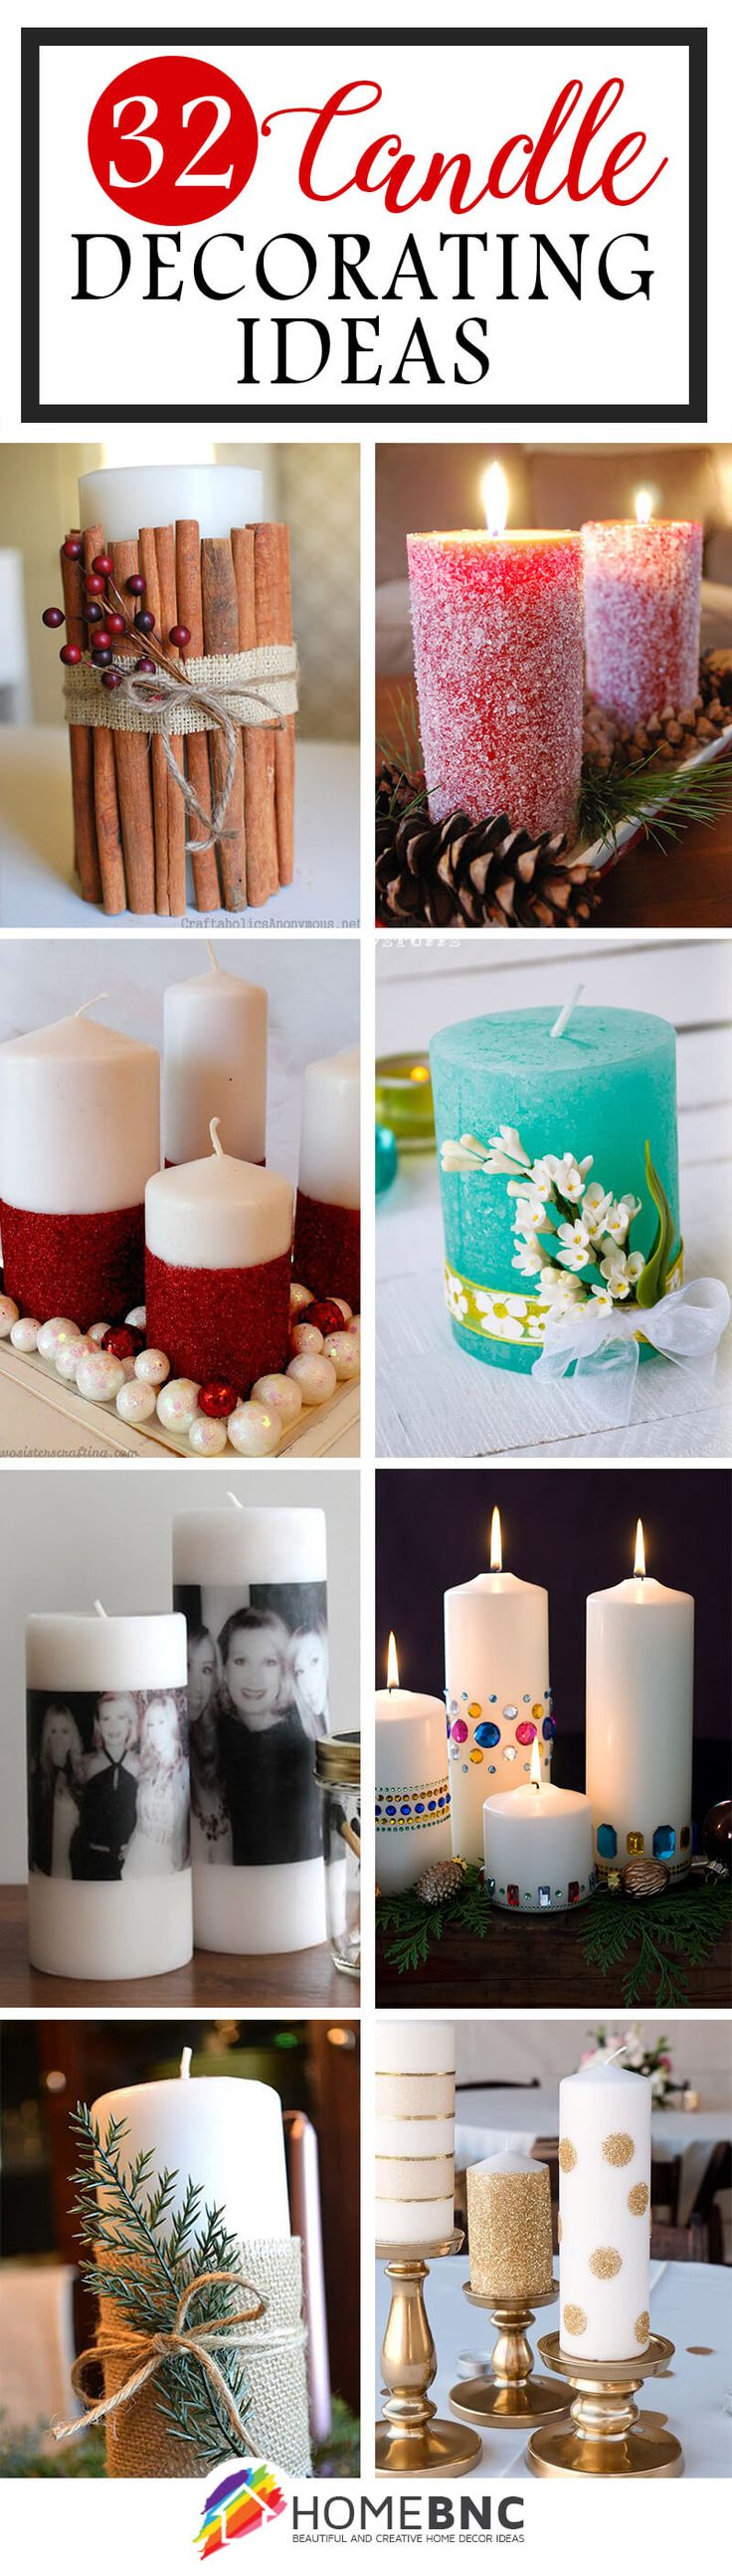 Decorated Candle Ideas